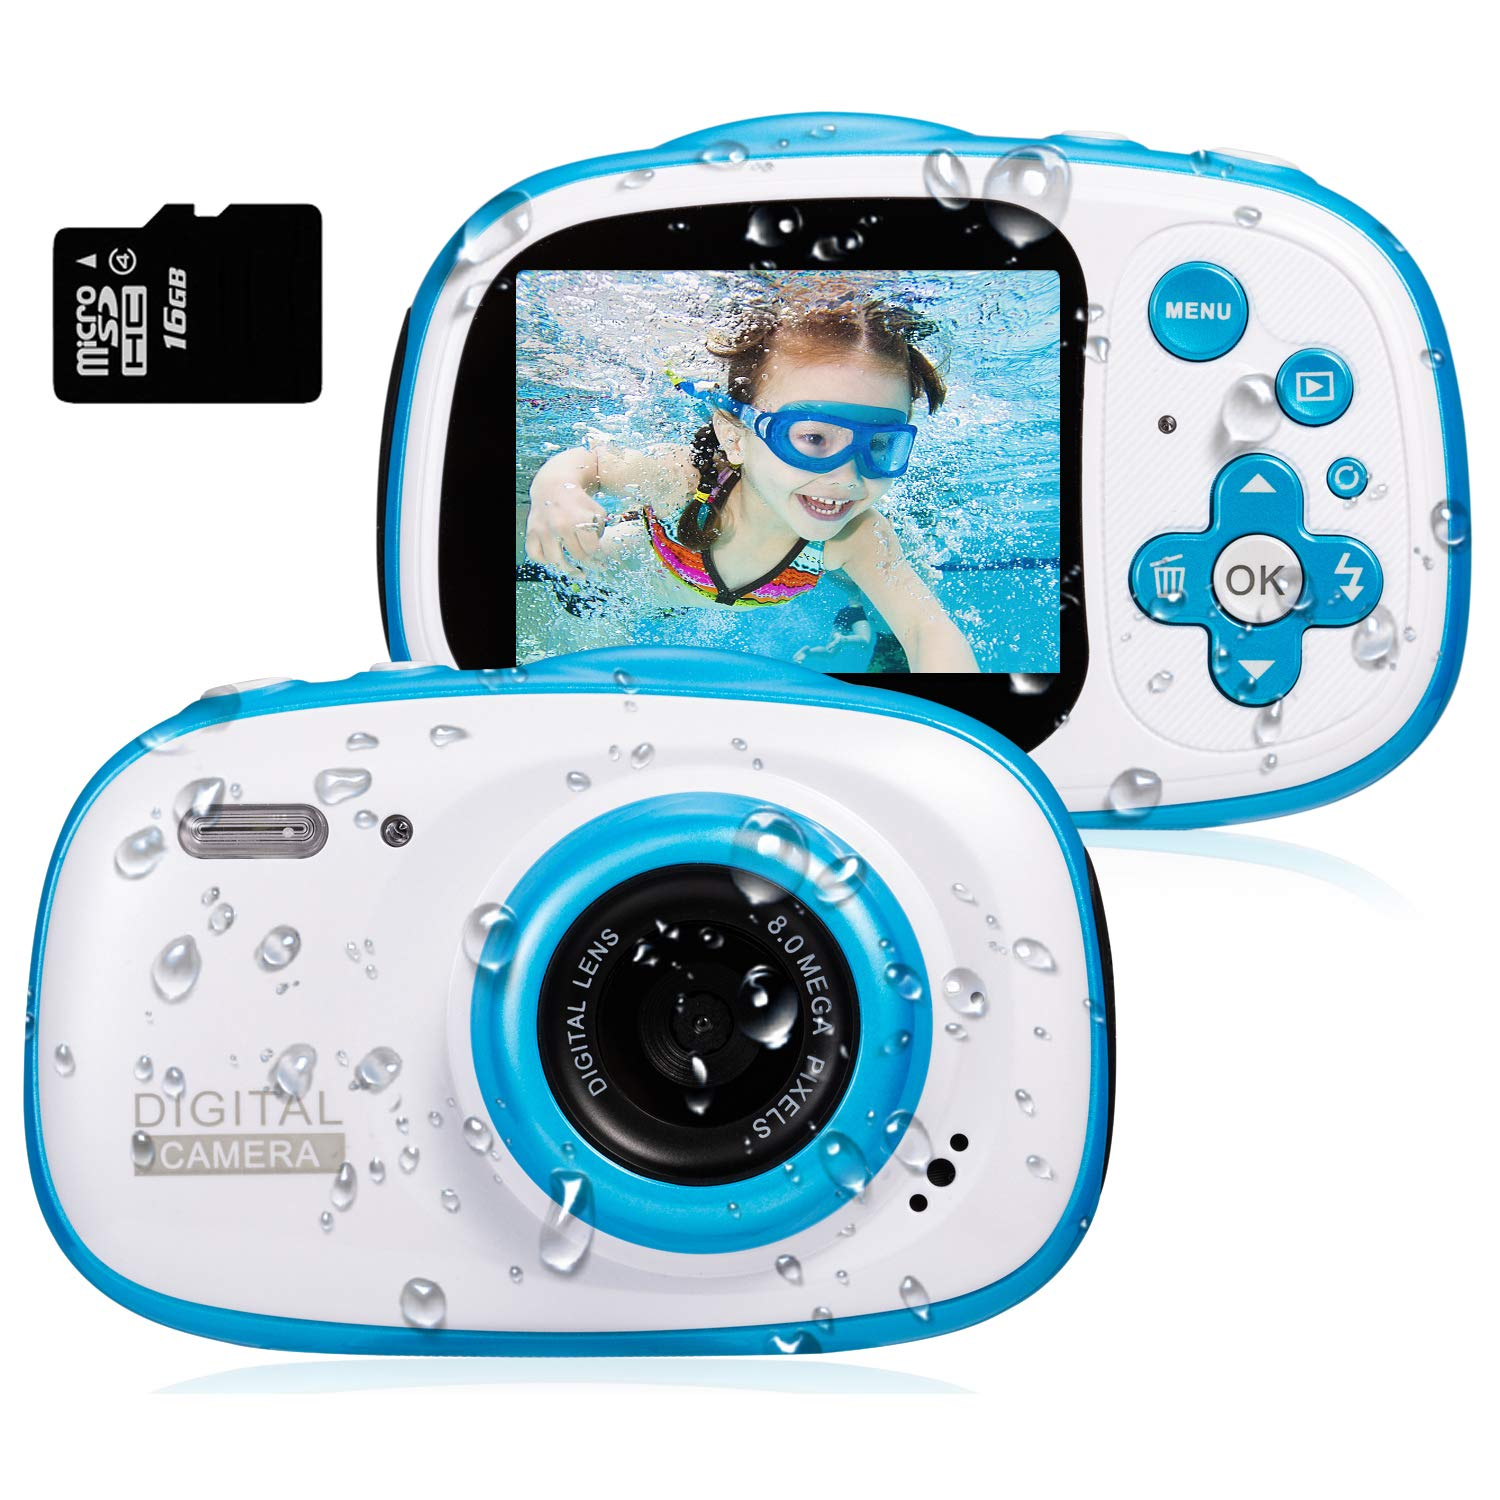 Dessports Toy Camera Waterproof HD Video Cameras for Kids Digital Camcorder Cute Children's Zoom Camera Birthday Gift for Kids 6-9 for Swimming, Blue (16G Memory Card Included) by Dessports